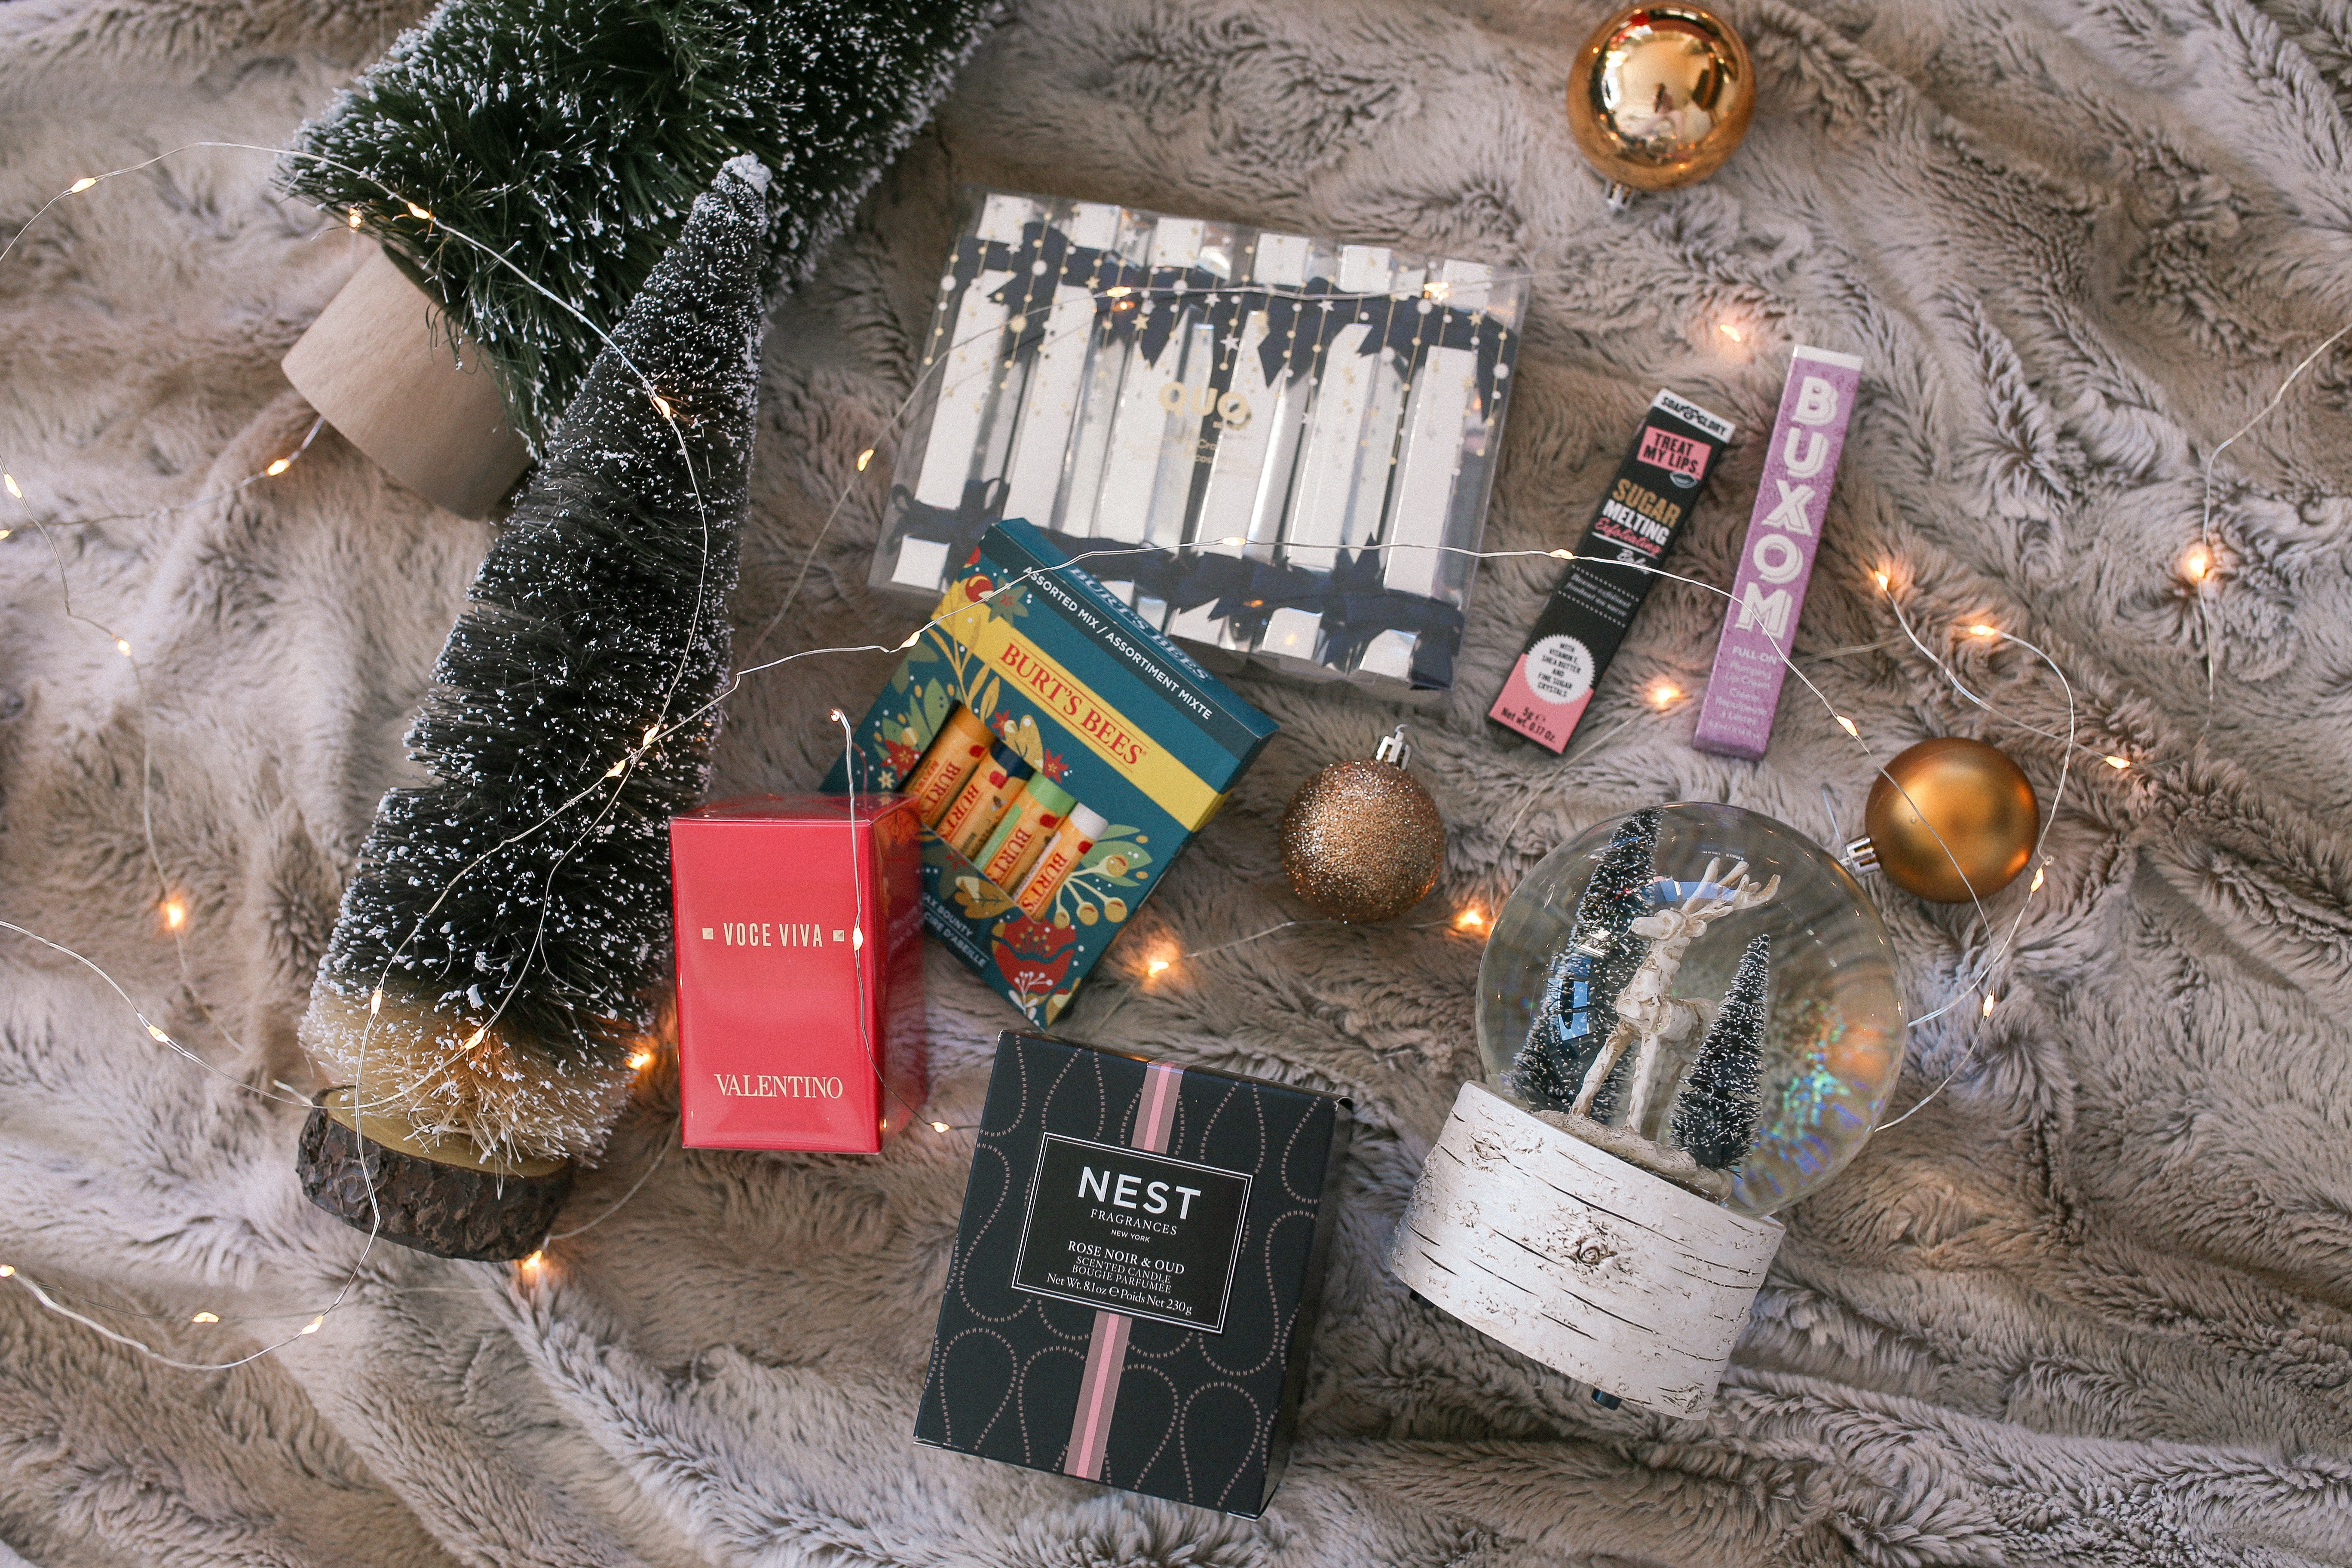 Best Beauty Gift Ideas for Christmas and last-minute gifts from Shoppers Drug Mart